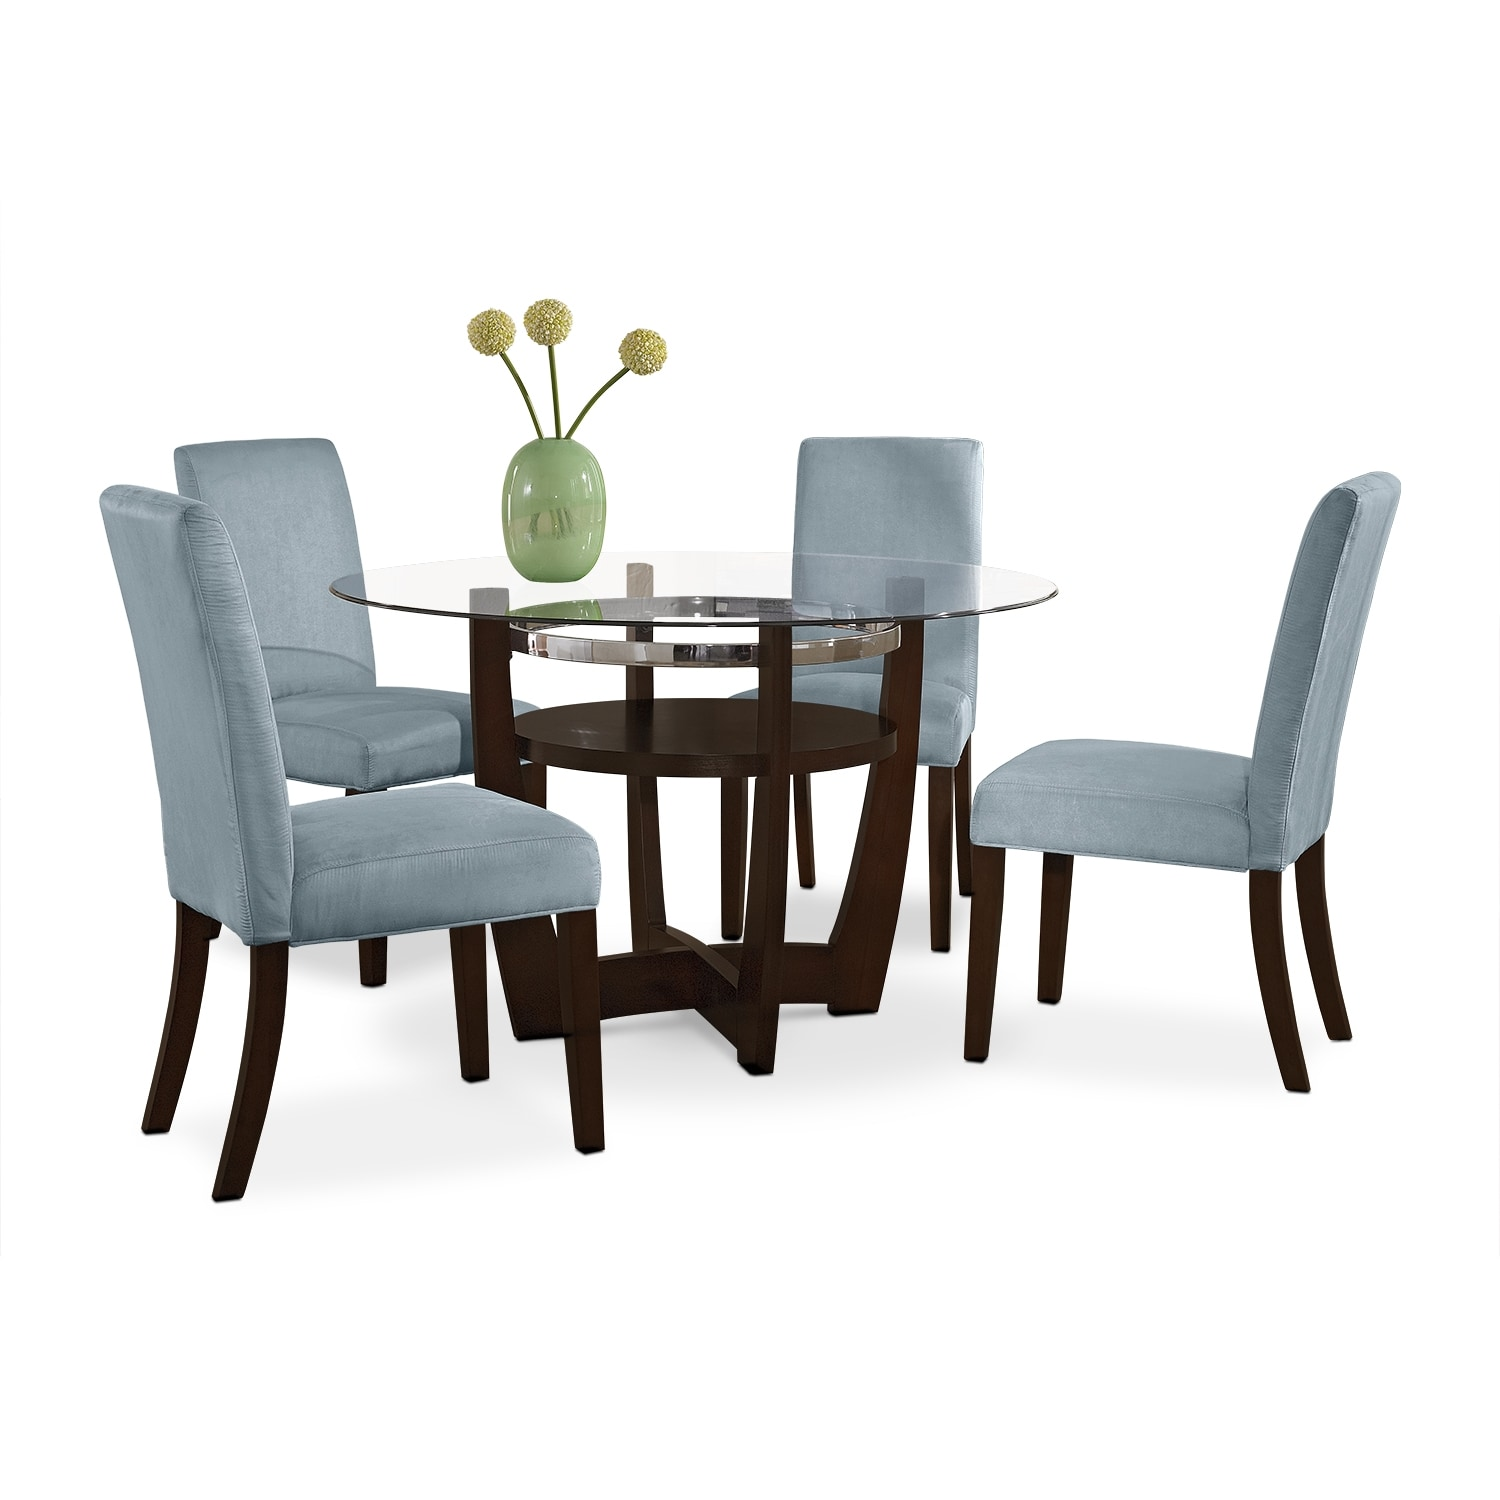 Alcove Dinette with Four Side Chairs - Aqua